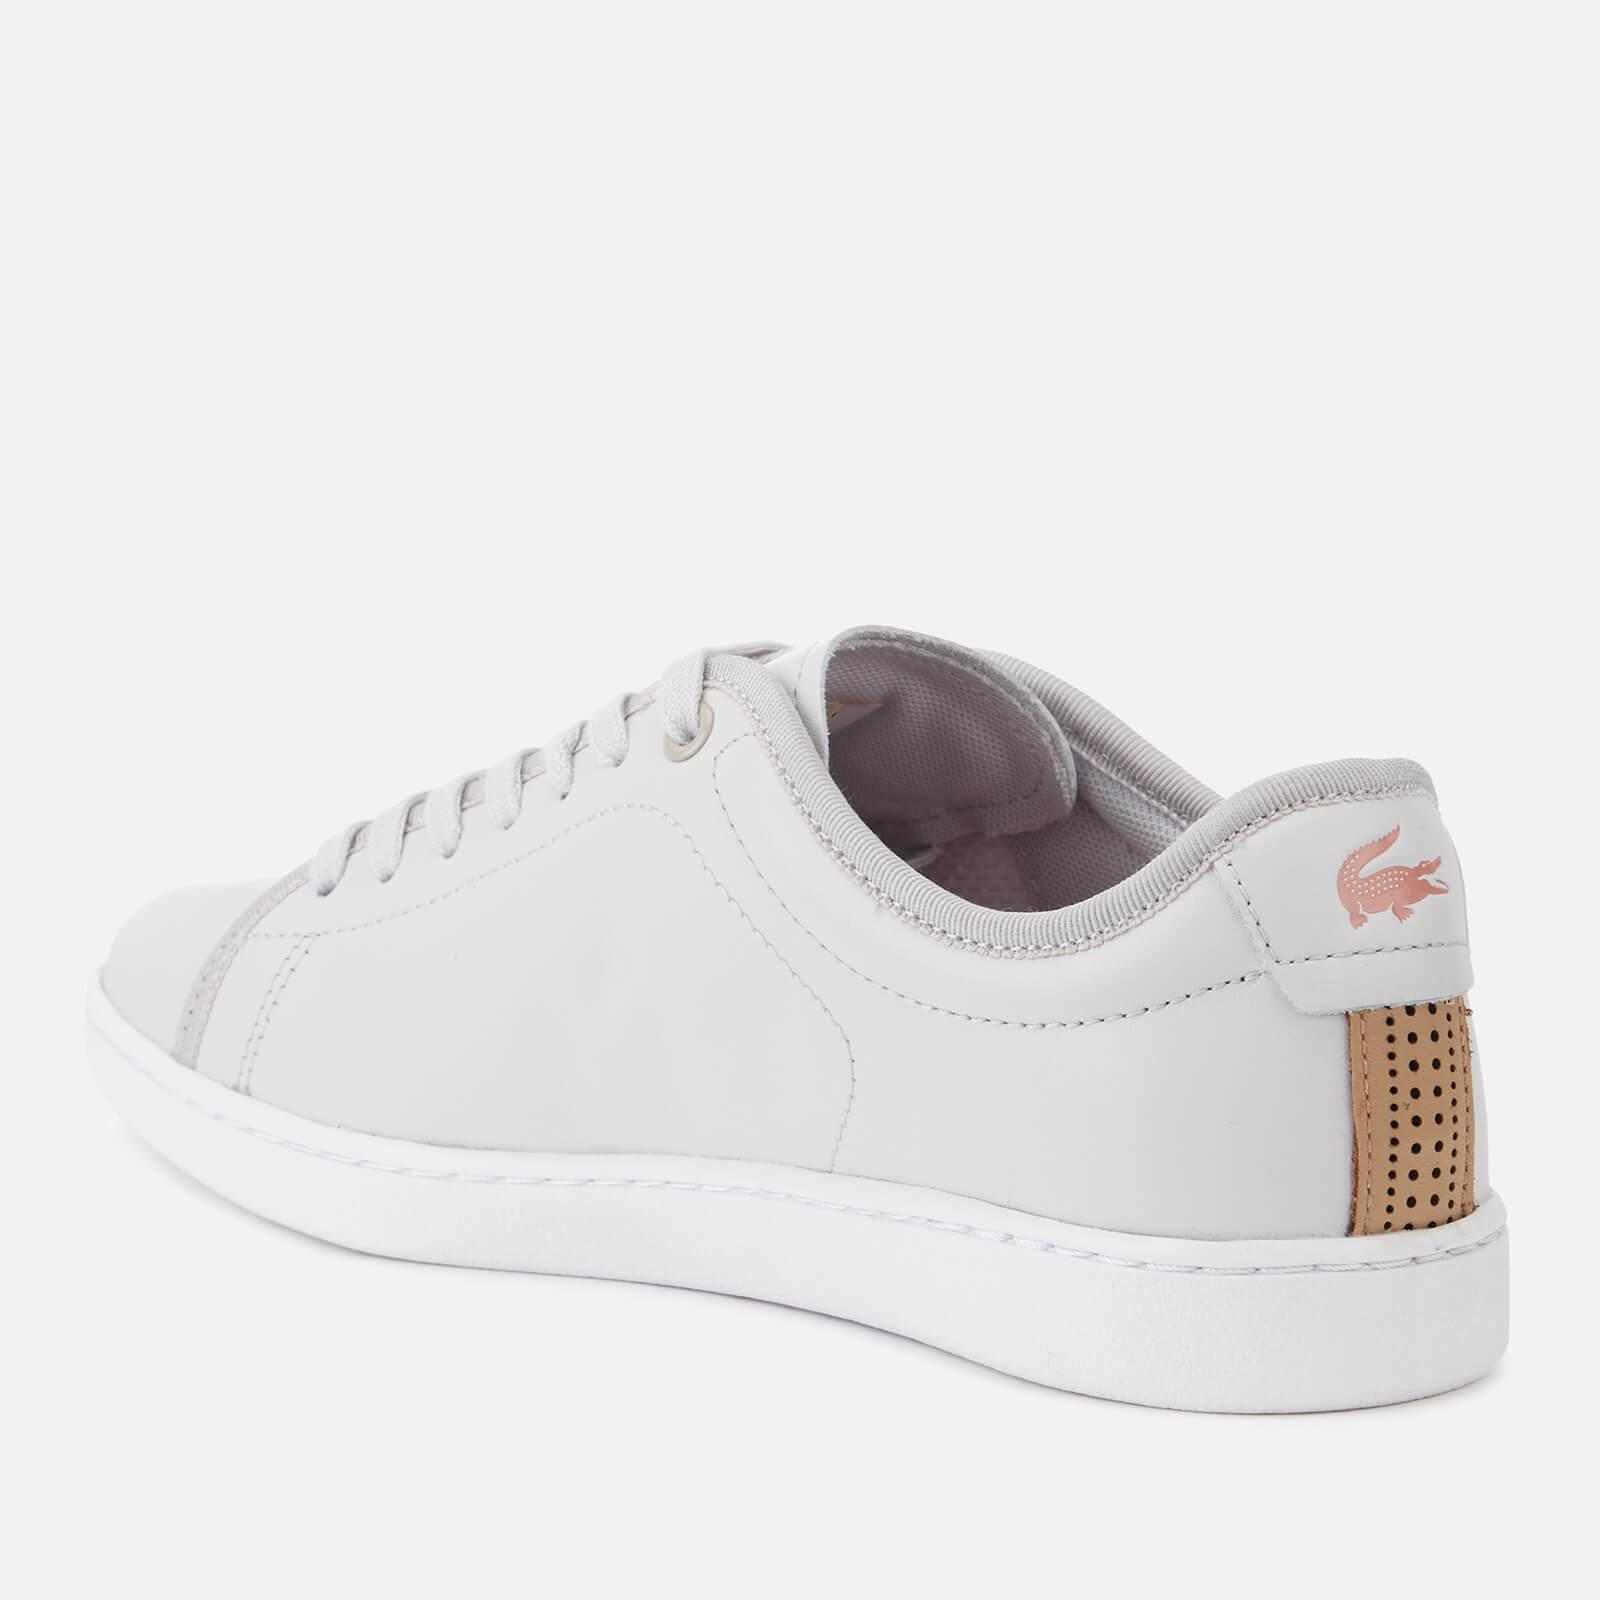 95f9200bbf21 Lacoste - Gray Carnaby Evo 318 6 Leather Trainers - Lyst. View fullscreen